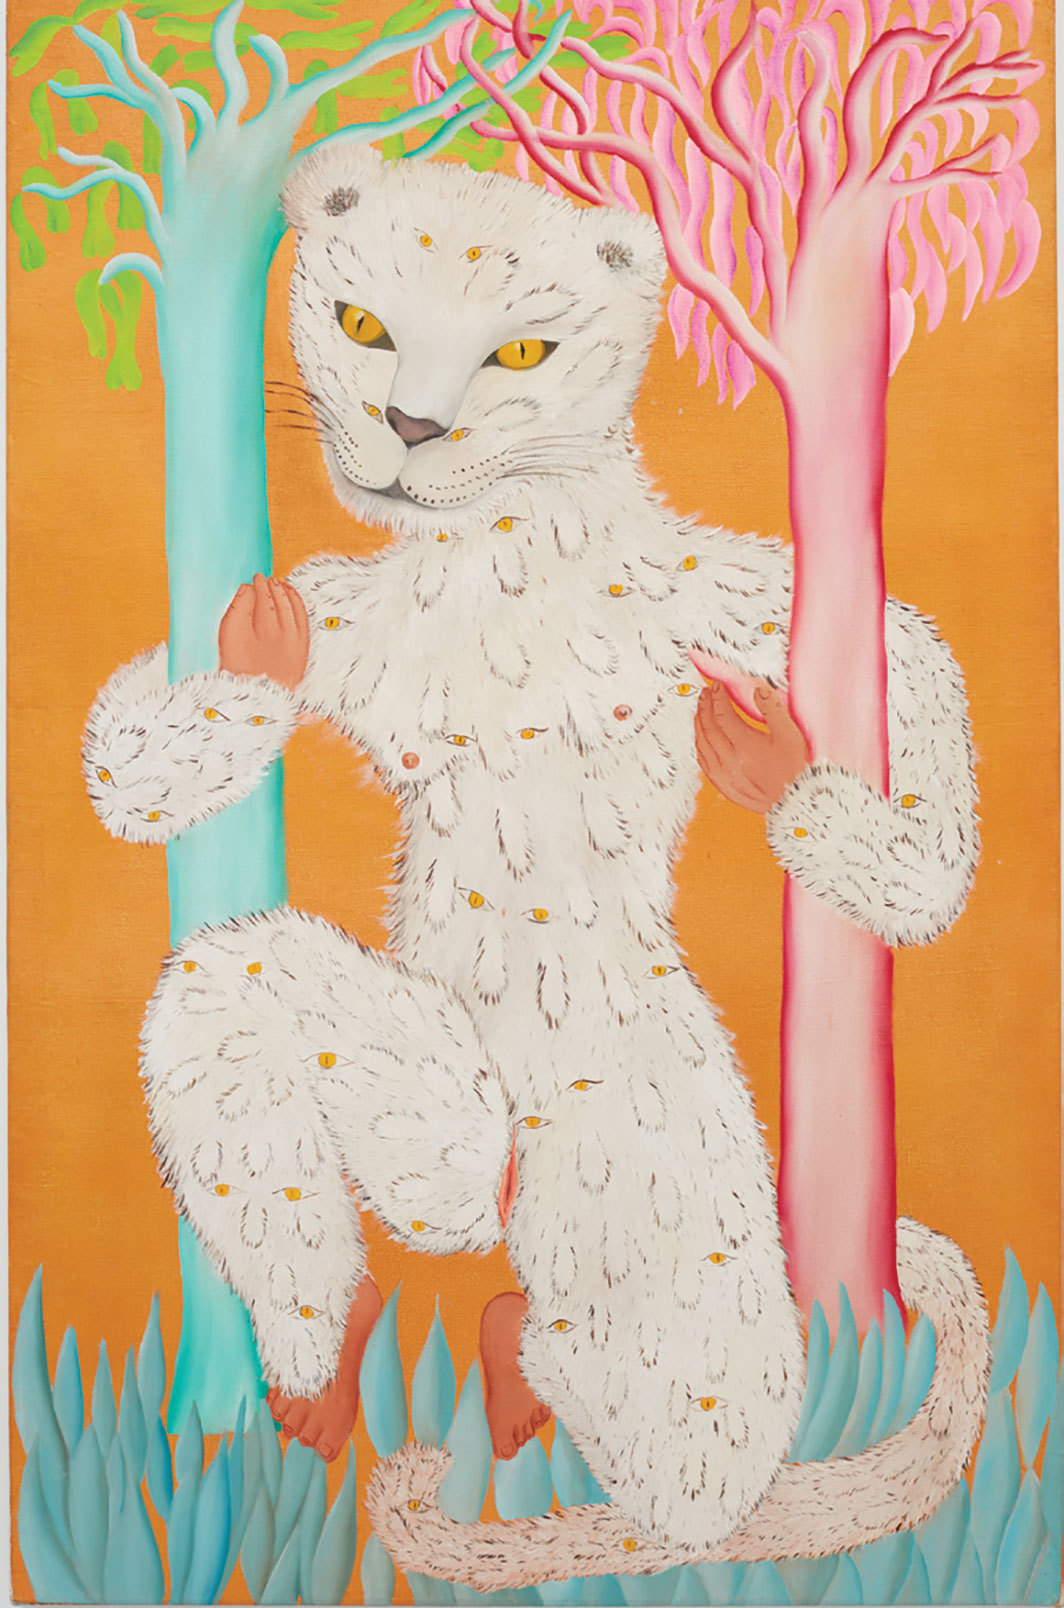 "Cecilia Vicuna, Leoparda de Ojitos (Leopard of Little Eyes), 1976, oil on canvas, 55 3⁄8 × 35 1⁄2""."